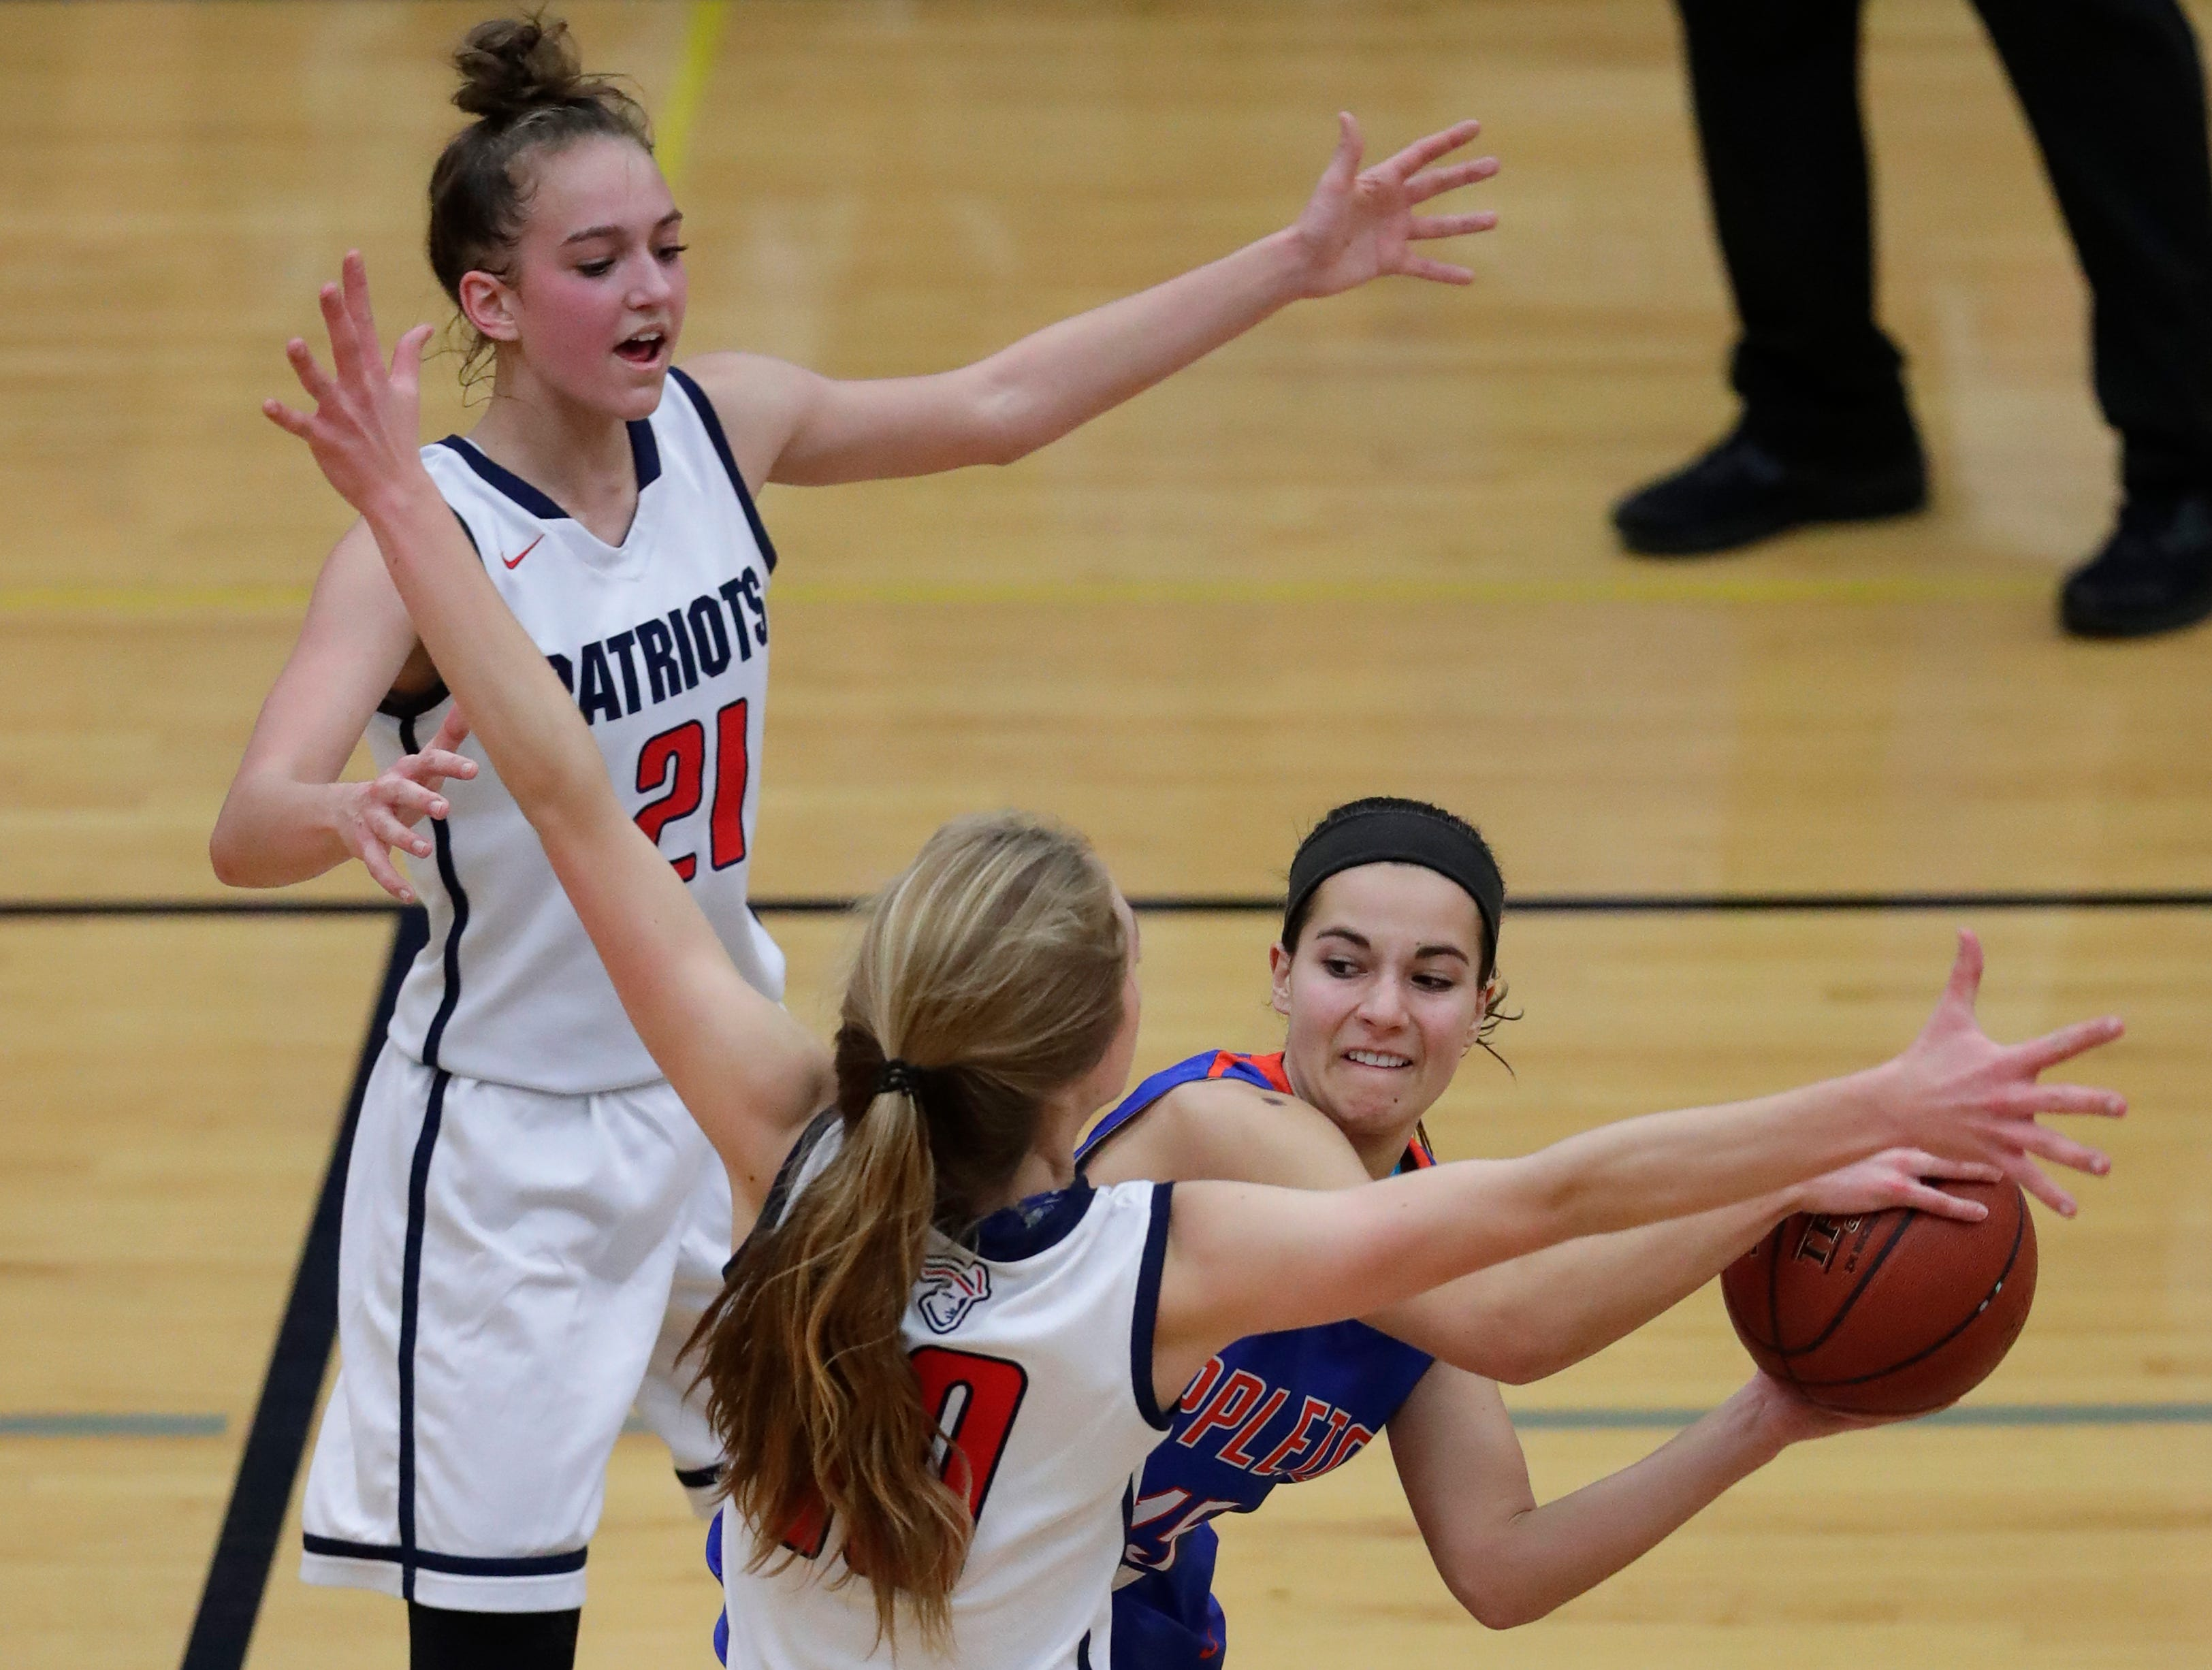 Appleton East High School's Cameron Neubauer (1) and Emily LaChapell (21) defend against Appleton West High School's Addie Pauling (15) during their girls basketball game Friday, January 11, 2019, at Appleton East High School in Appleton, Wis. 